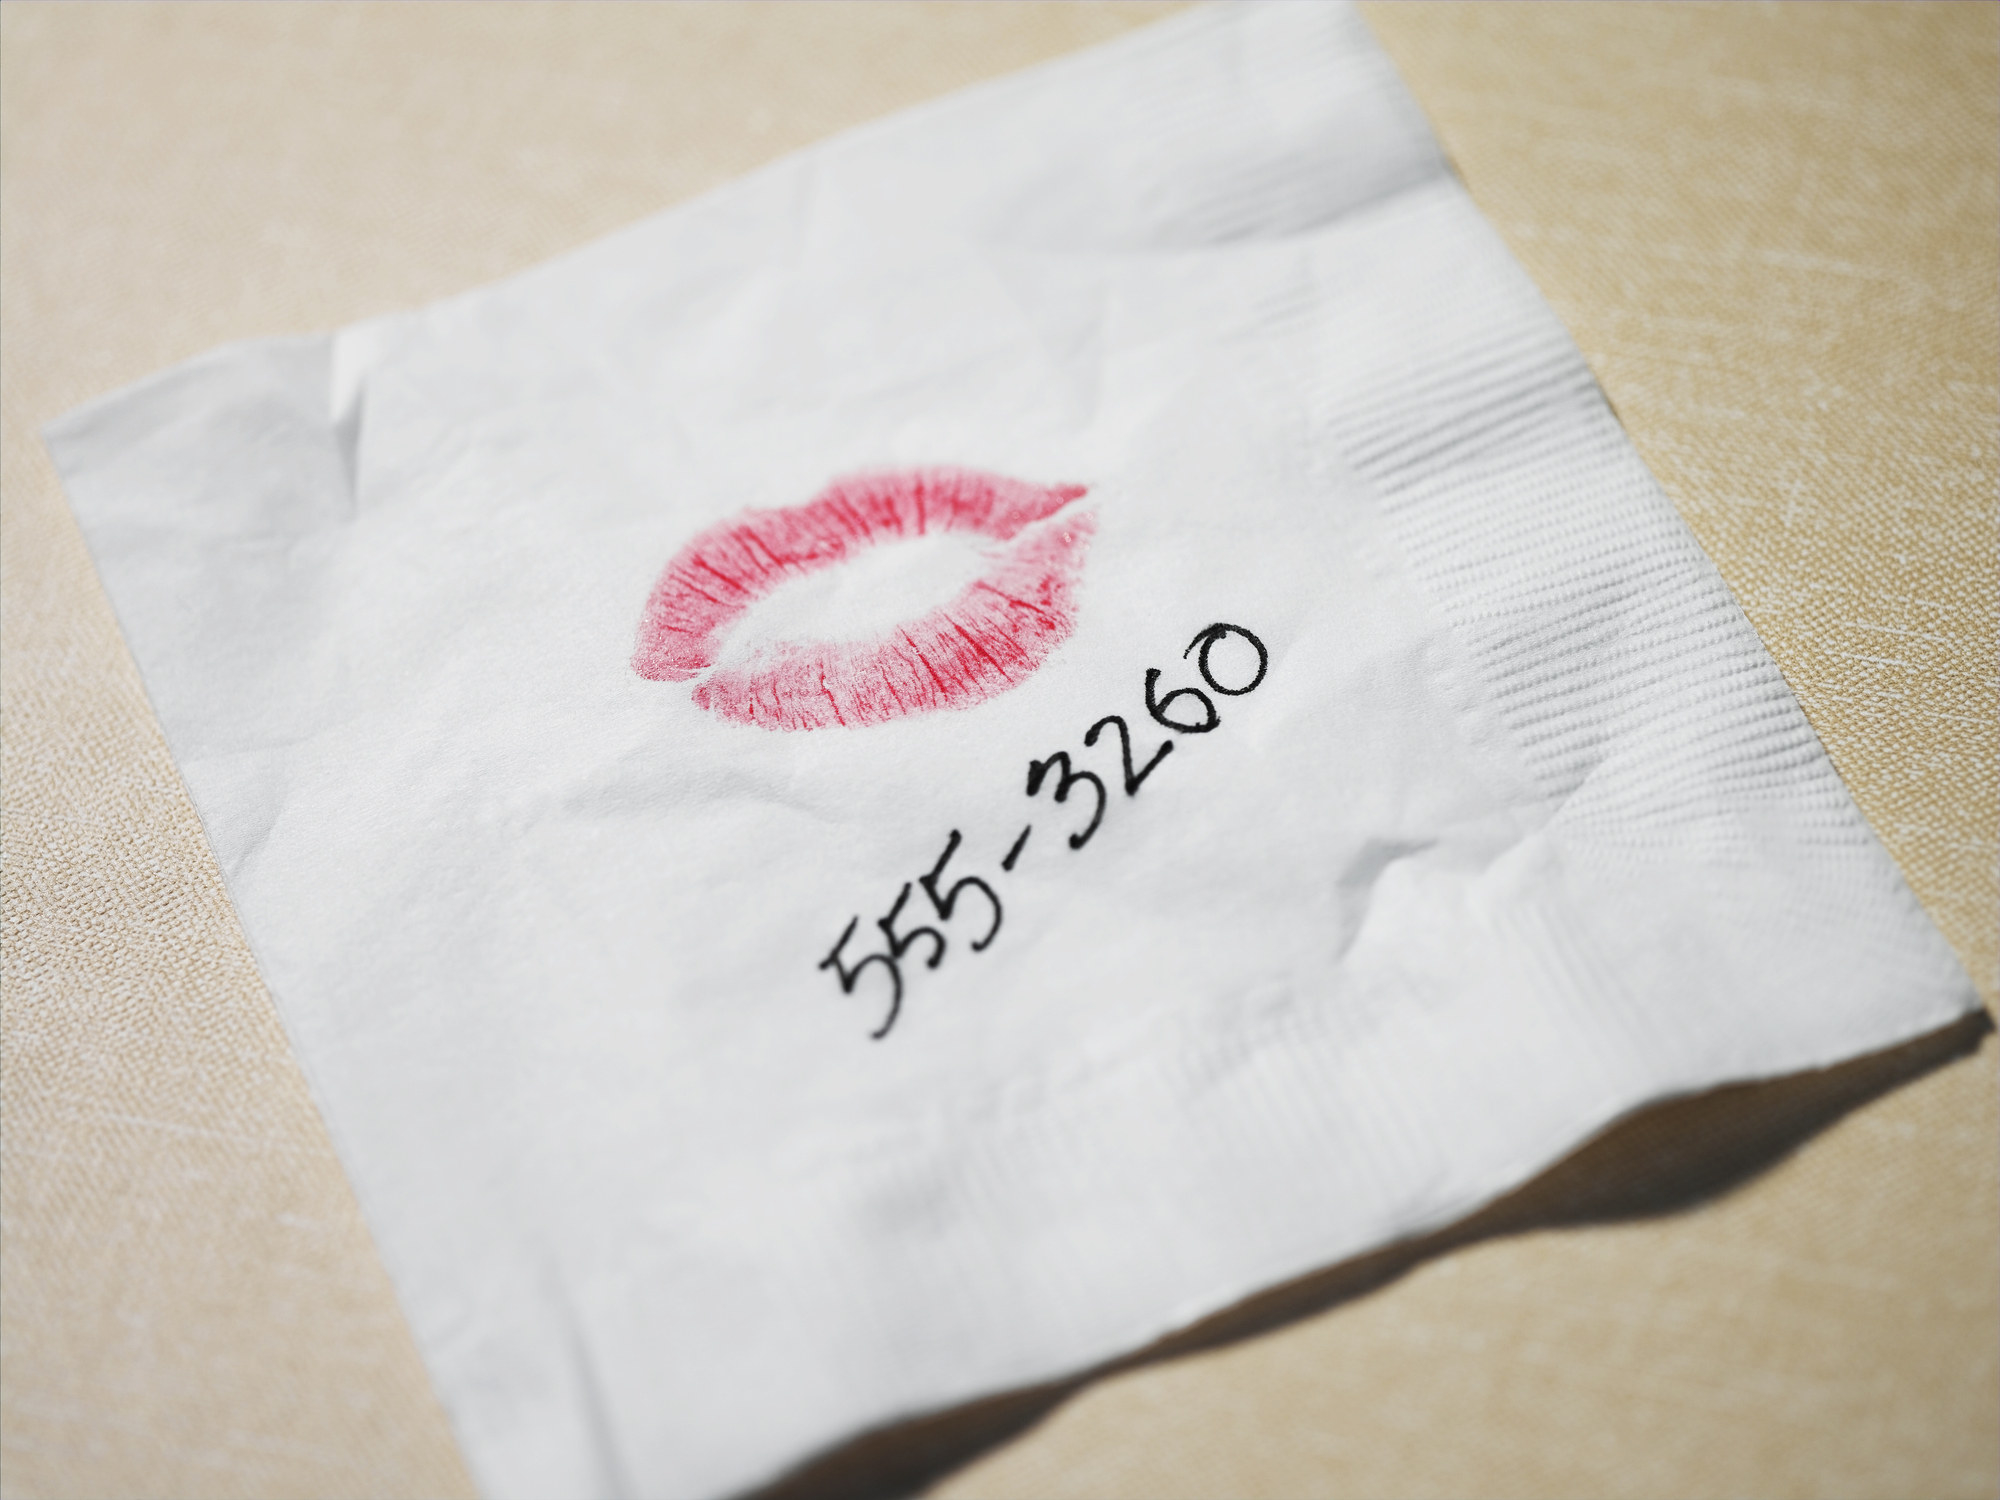 Cocktail napkin with lipstick kiss and number written in pen 555-3260